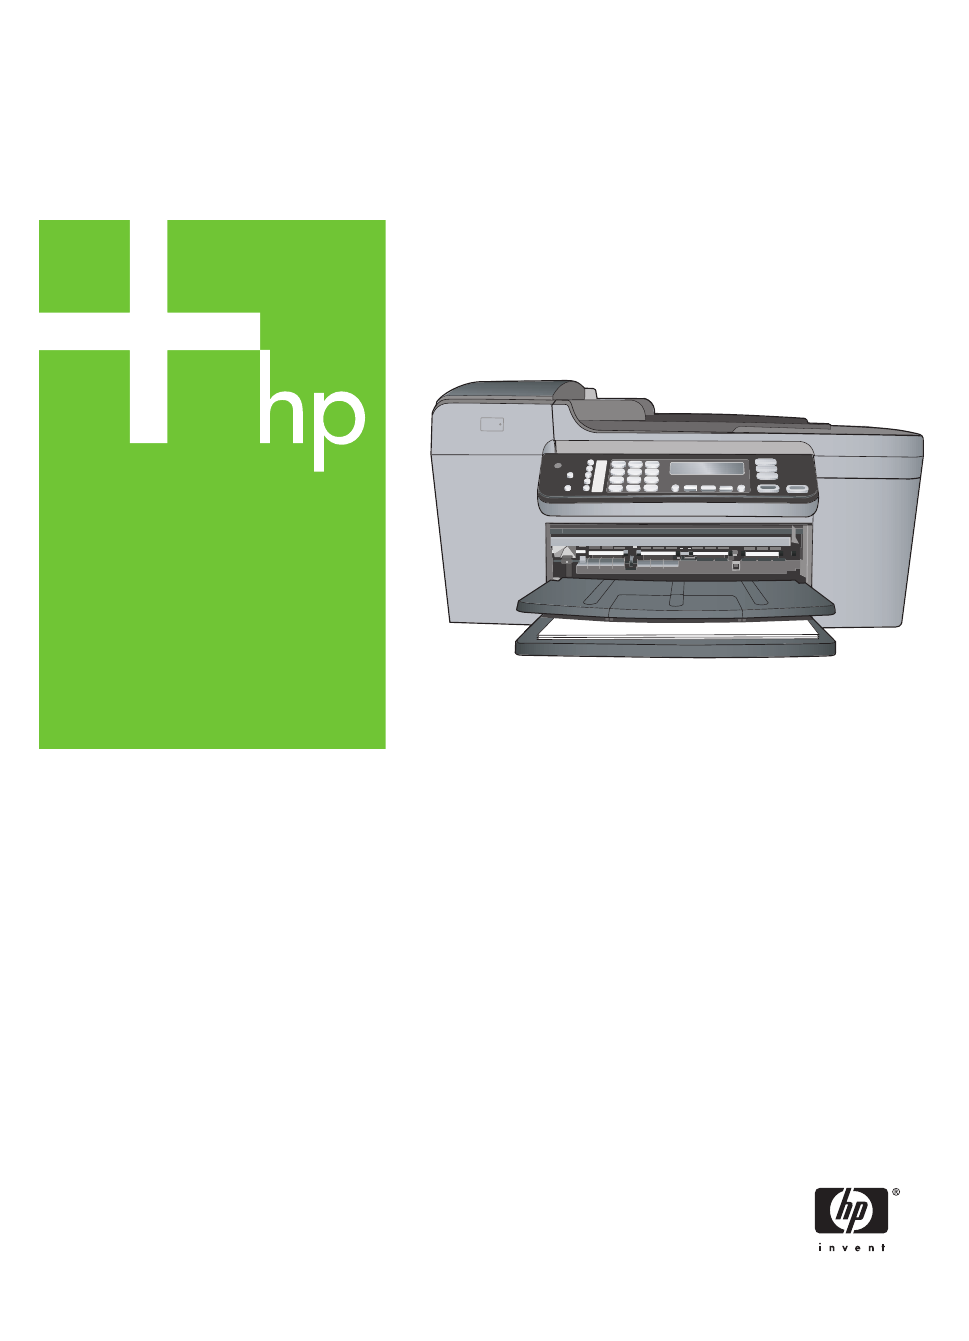 hp officejet 5610 all in one printer user s manual free pdf rh manualagent com hp 5610v printer driver HP Officejet 6700 Printer